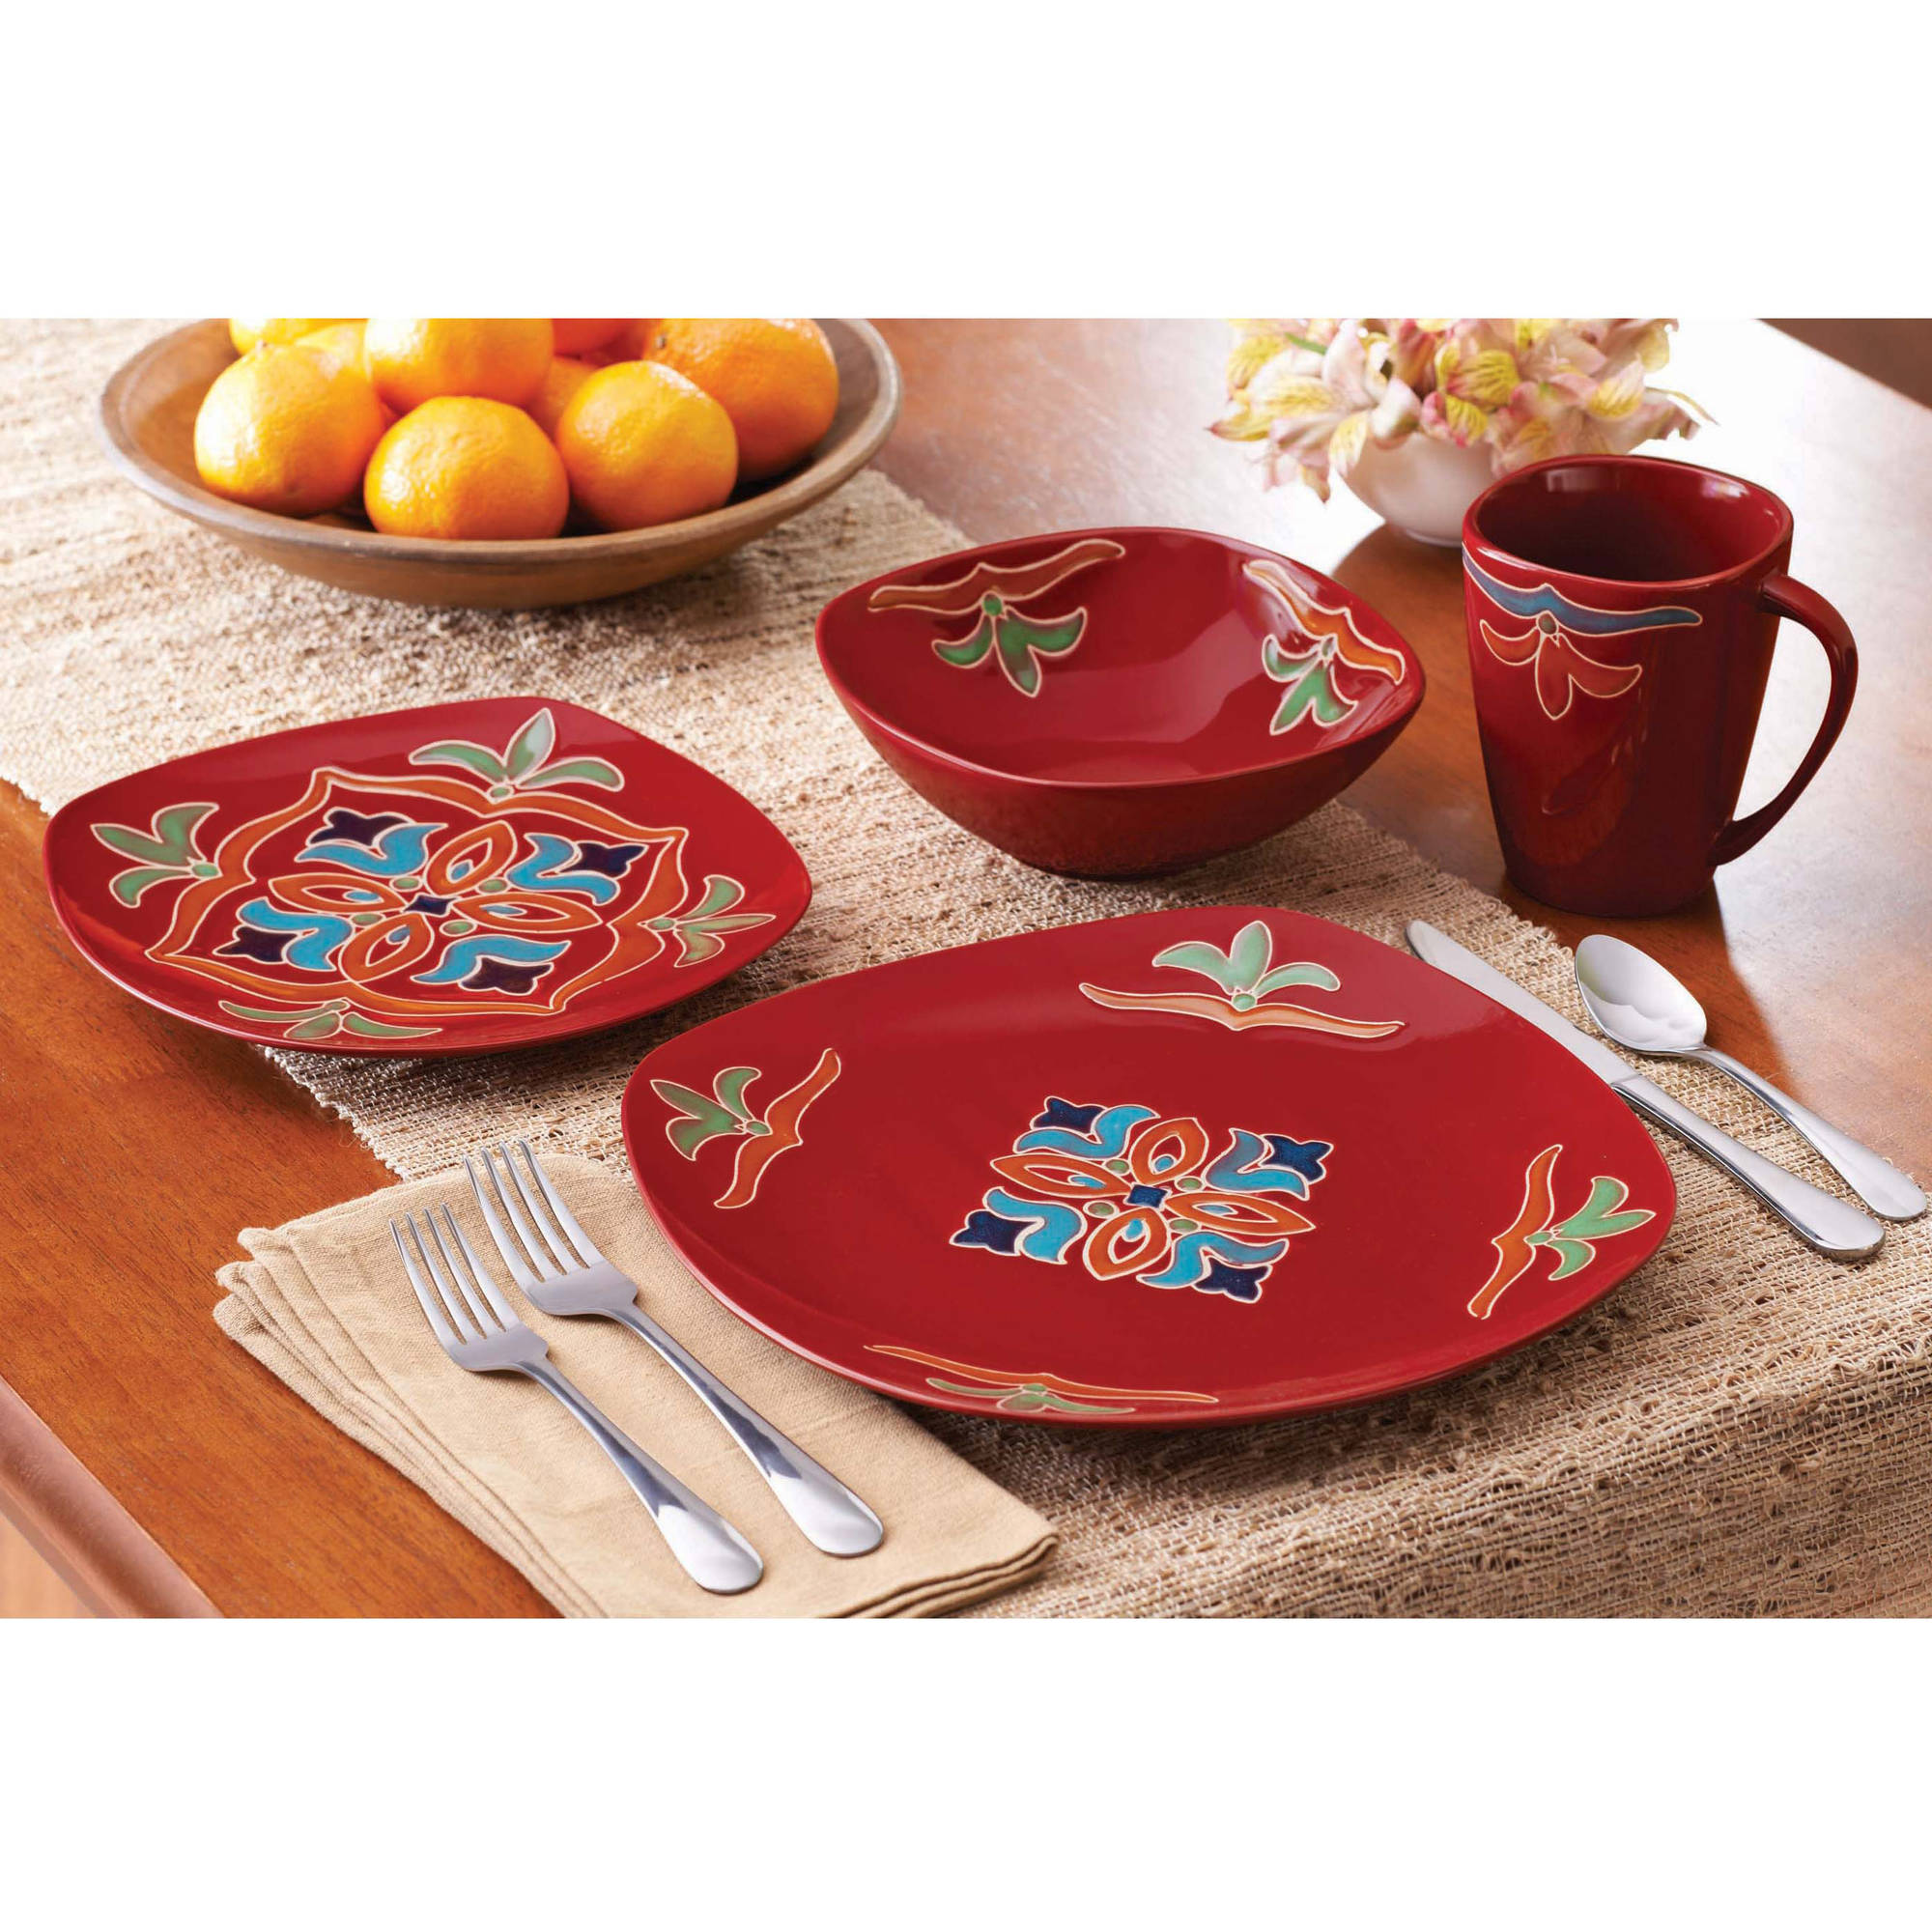 Marvelous Better Homes And Gardens Medallion 16 Piece Square Dinnerware Set, Red    Walmart.com